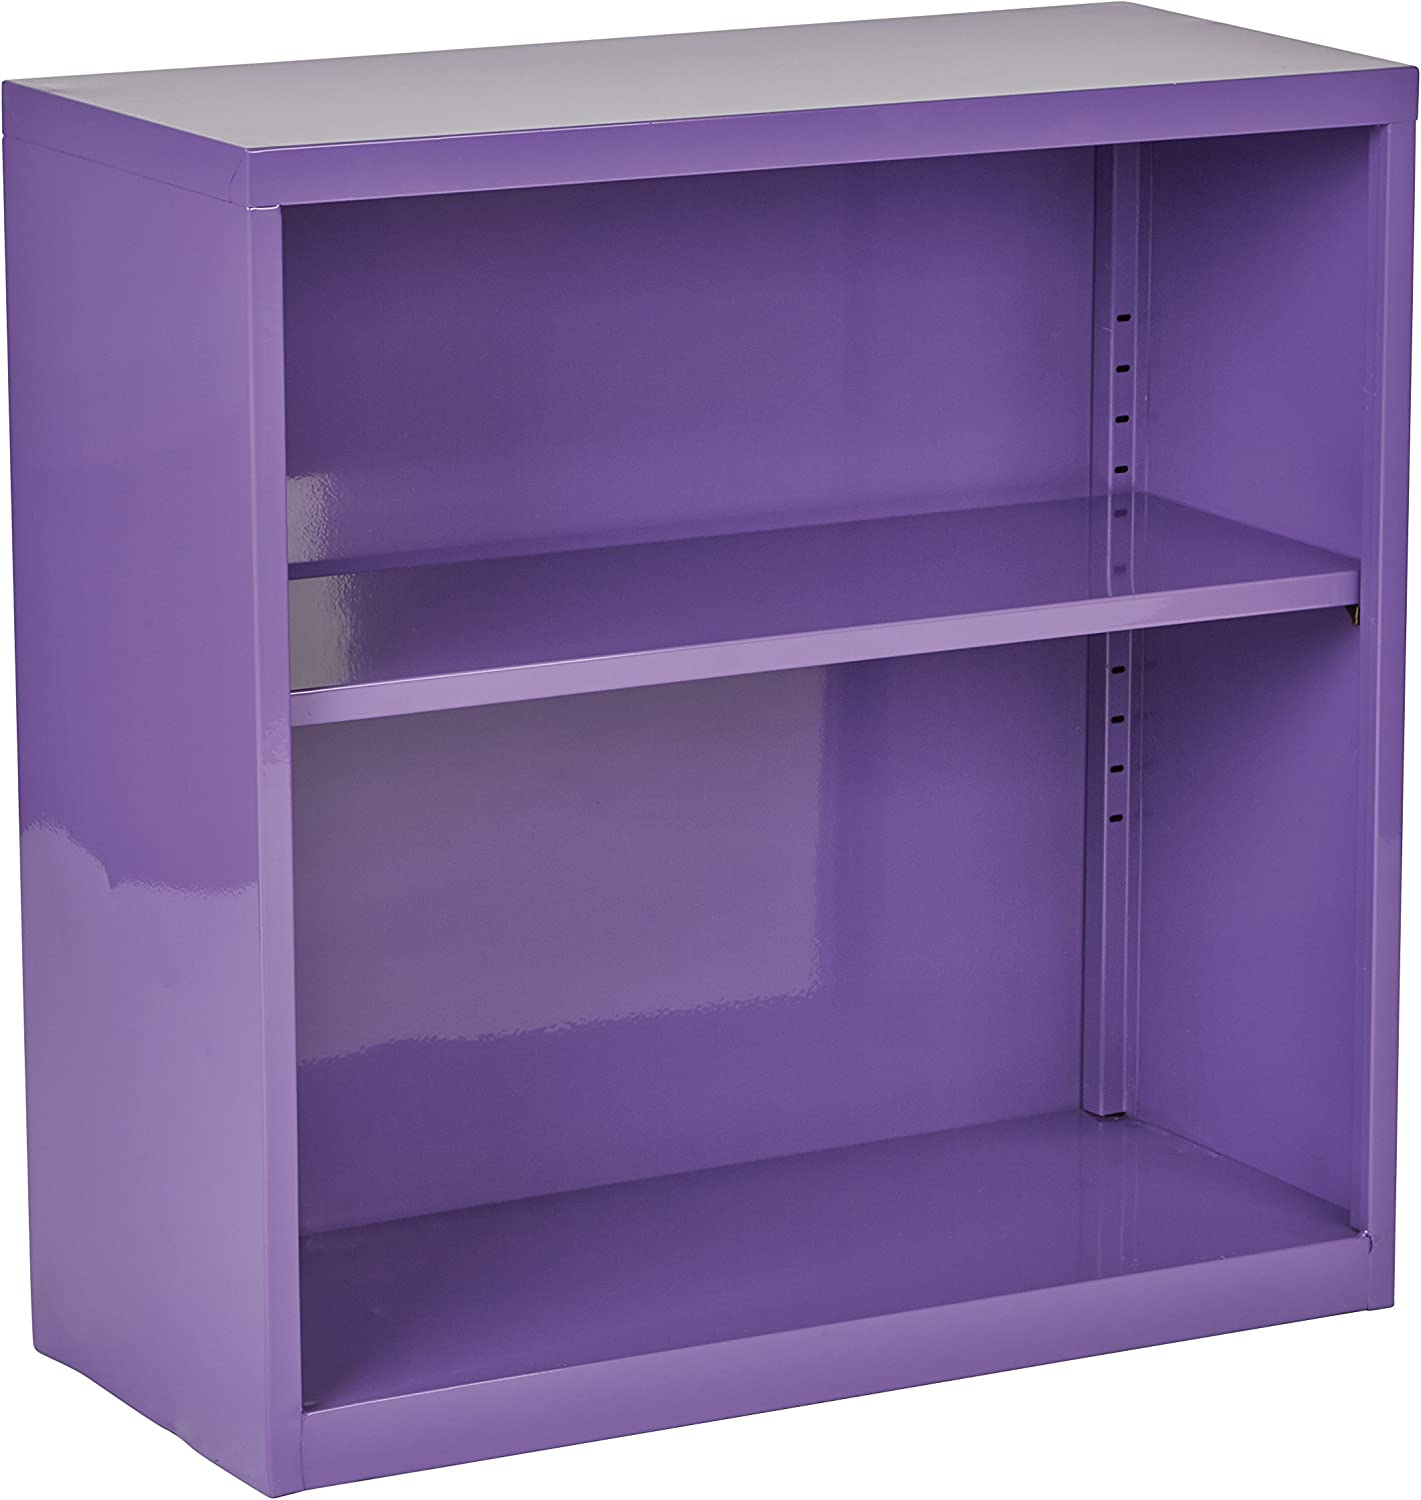 OSP Designs HPBC512 Metal Bookcase with 1 Adjustable Shelf, Purple Finish